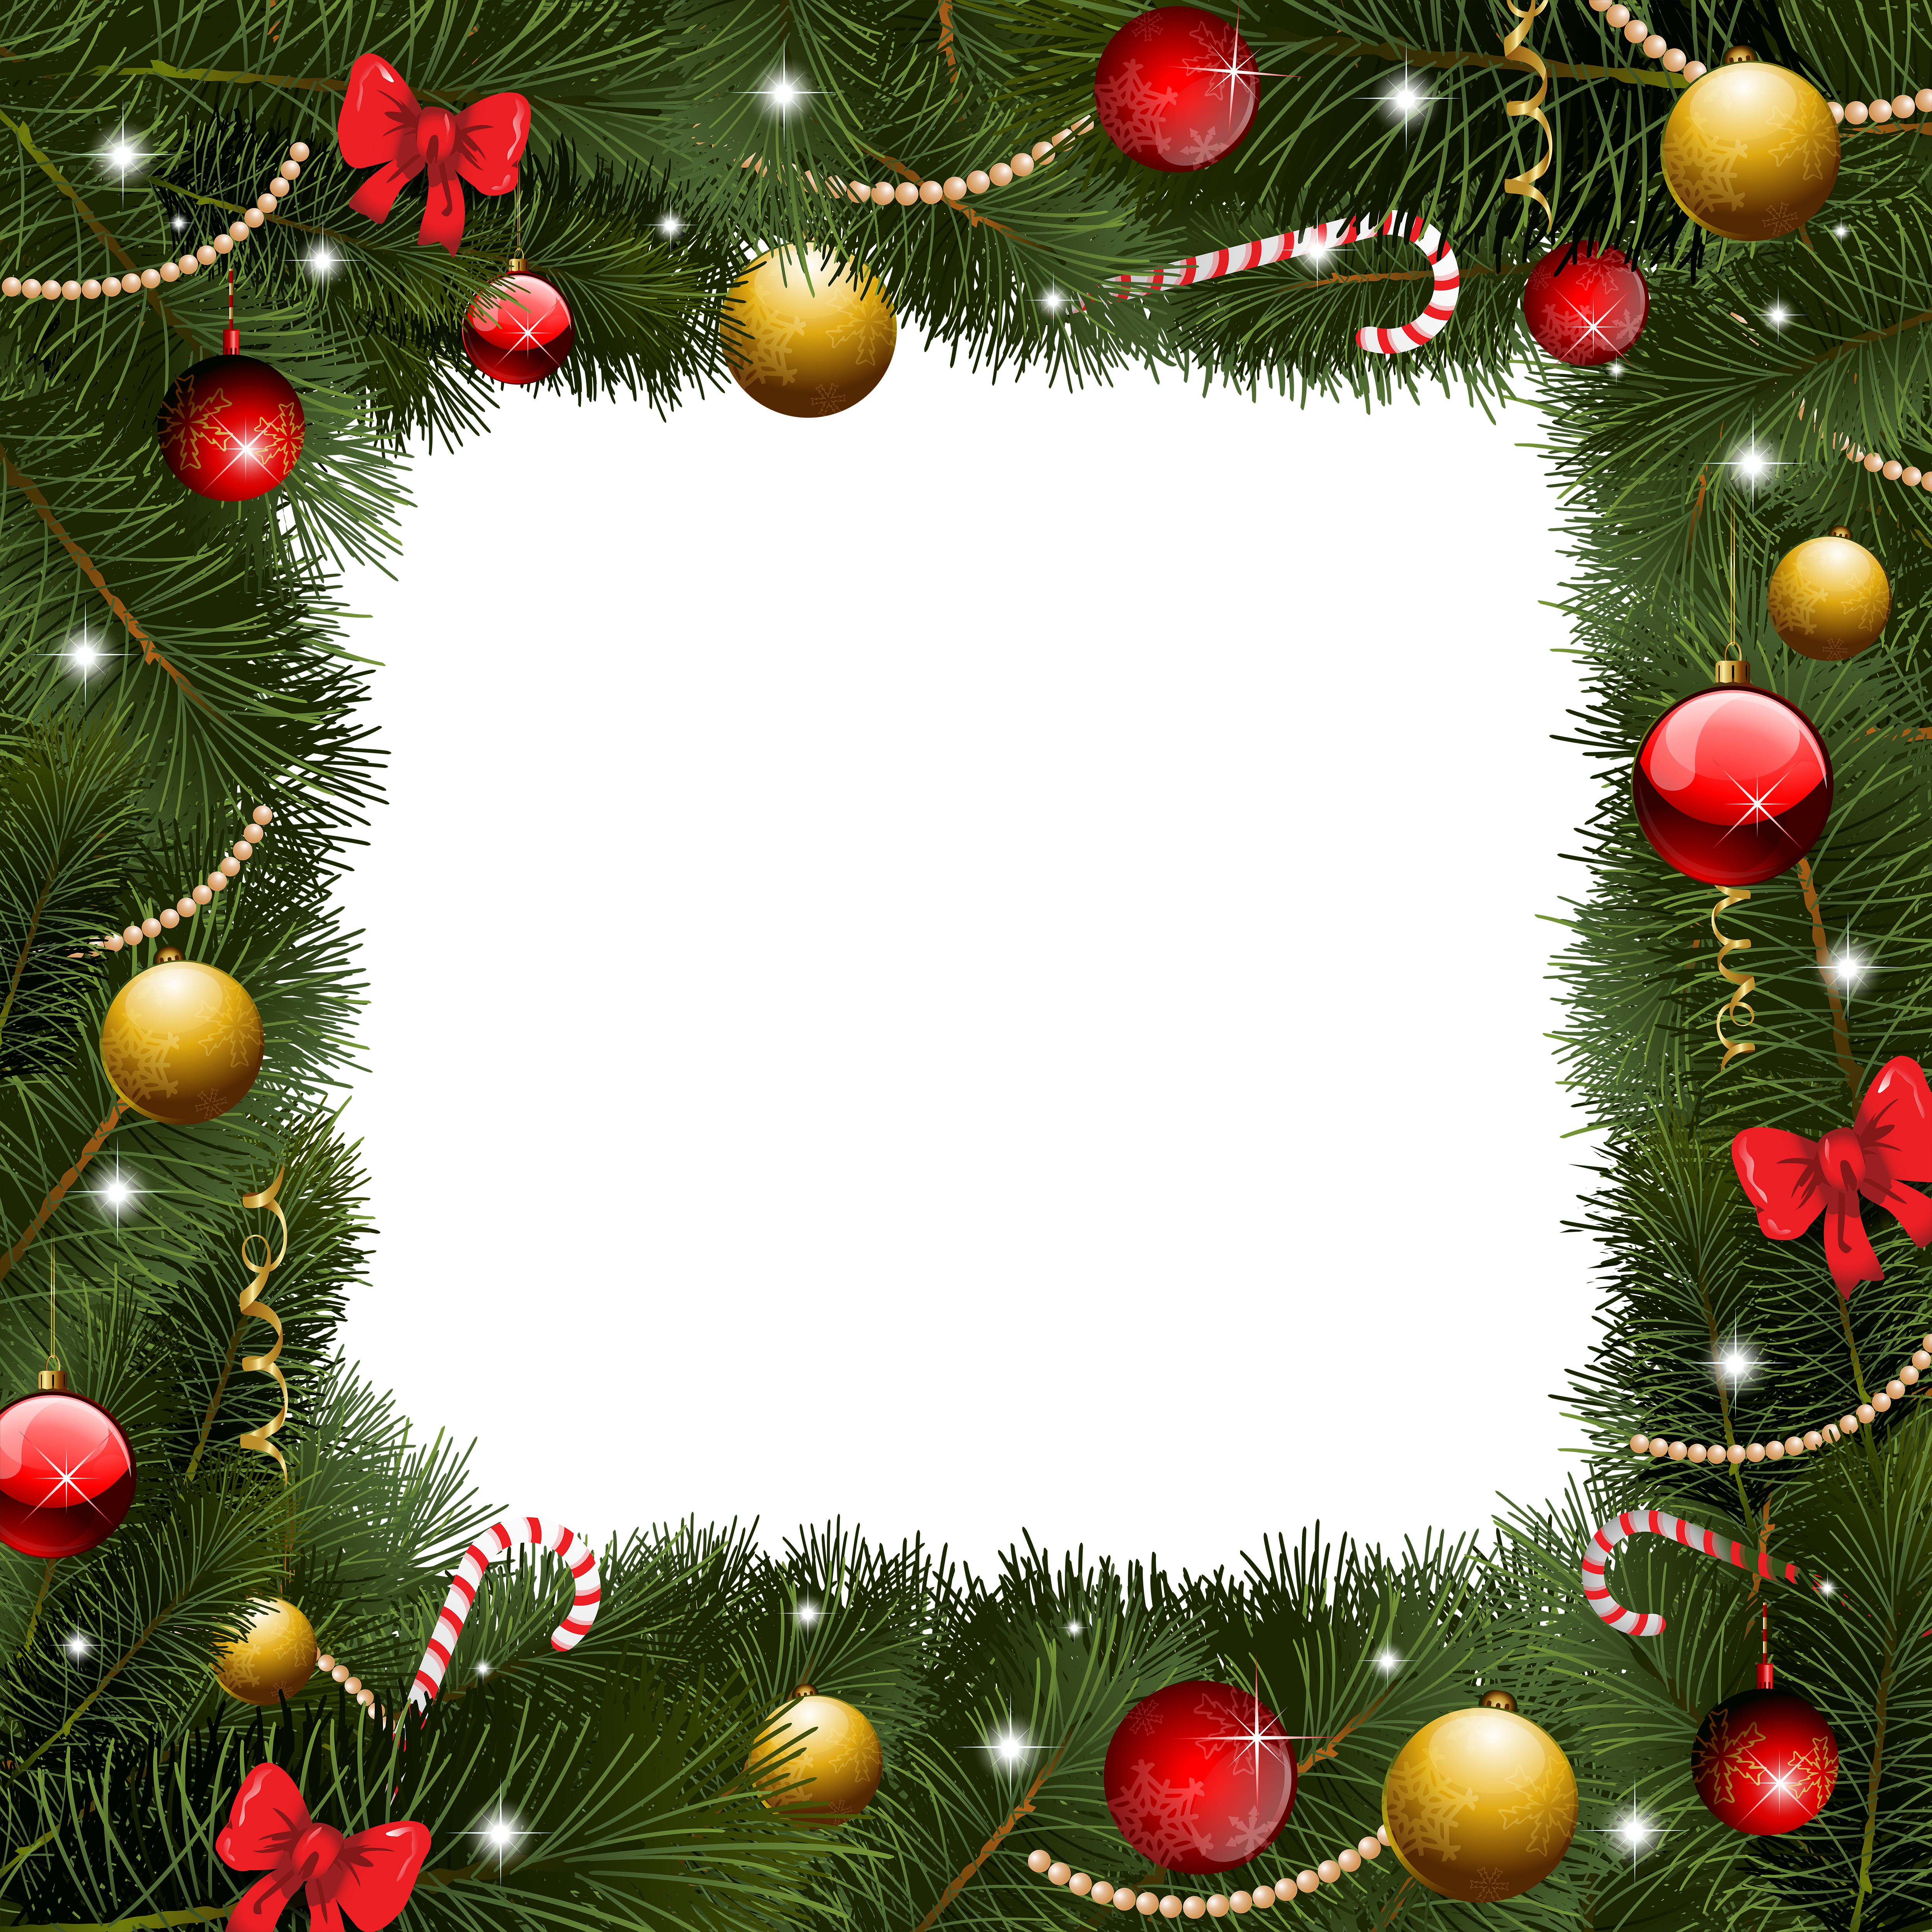 christmas borders png transparent images 3206 pngio